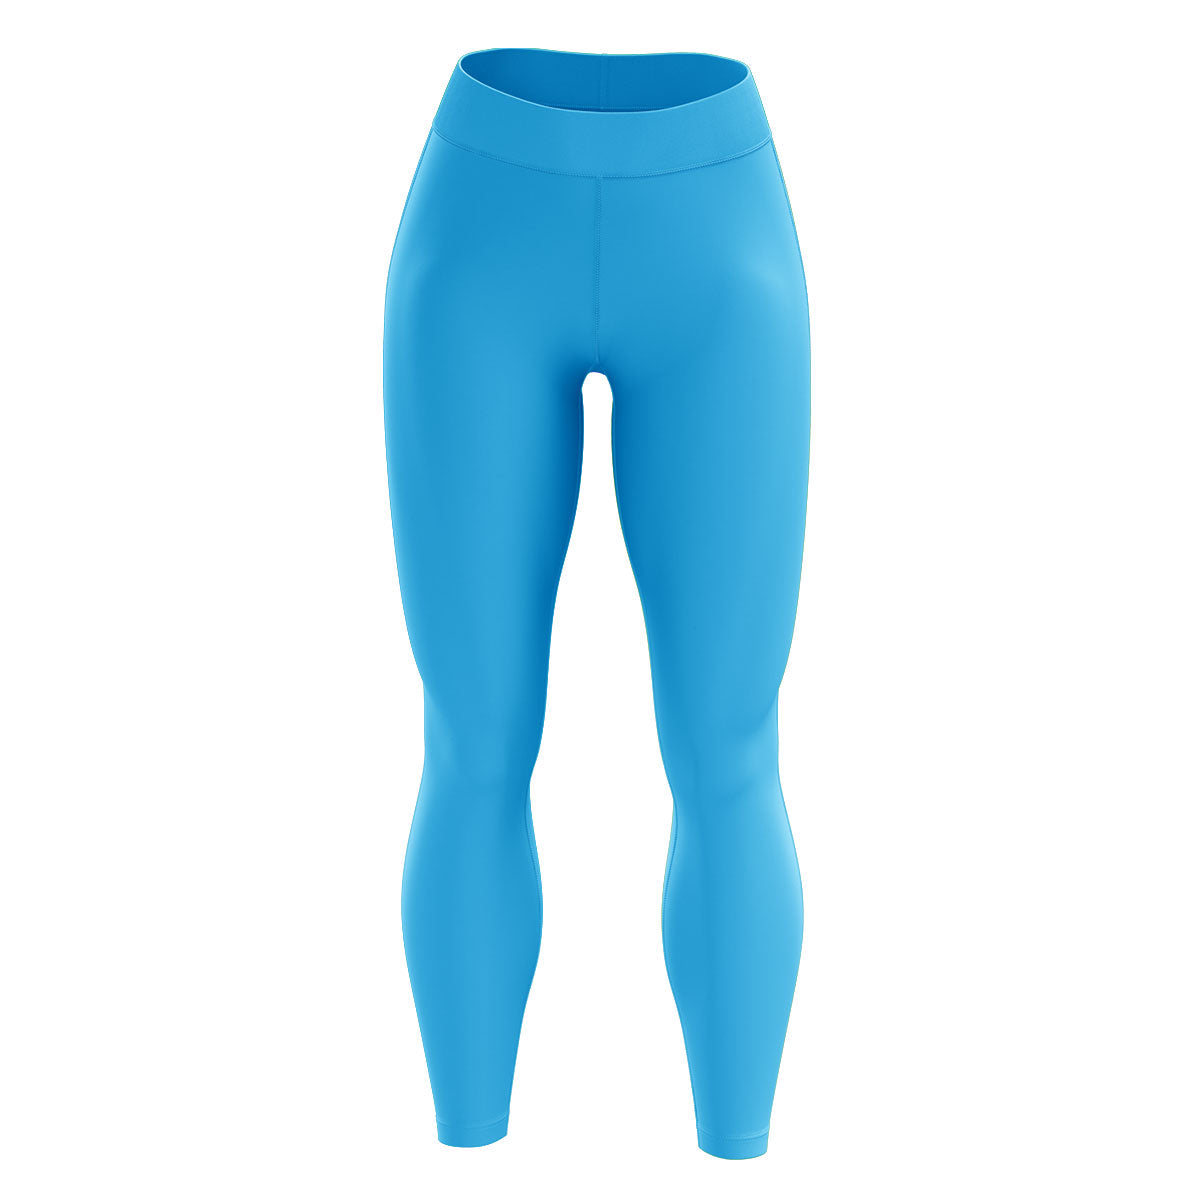 Bright Blue High Waisted Yoga Leggings